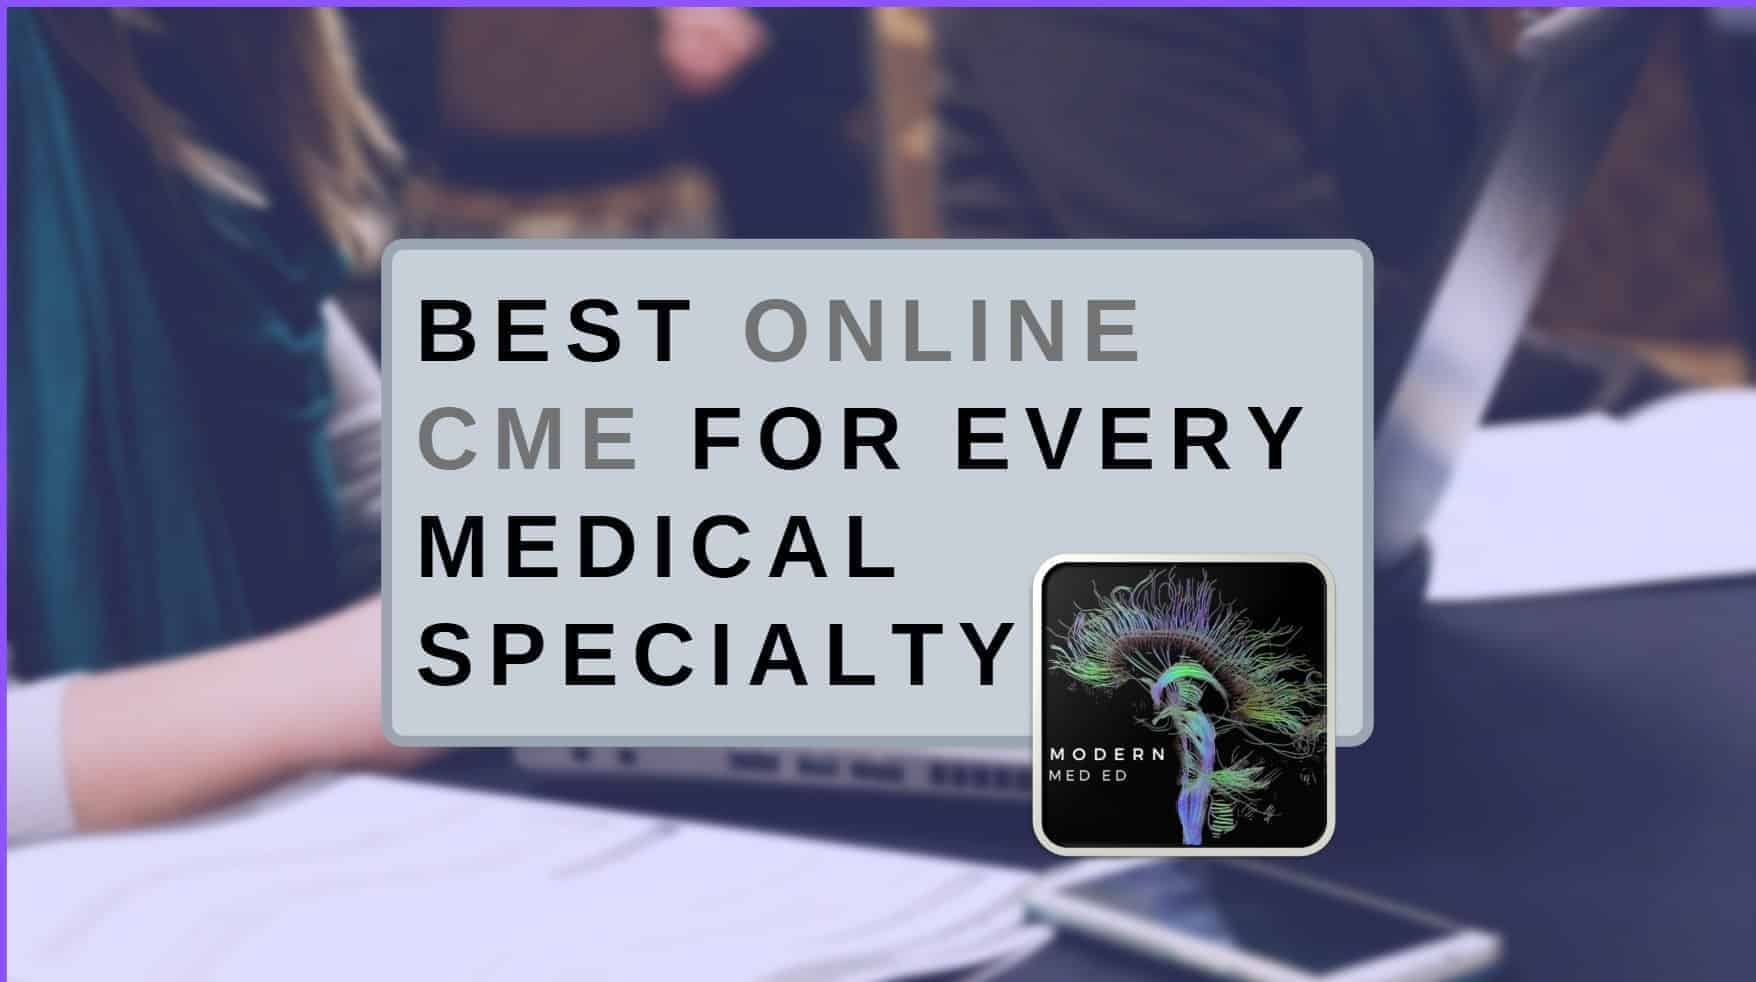 Online CME for every medical specialty